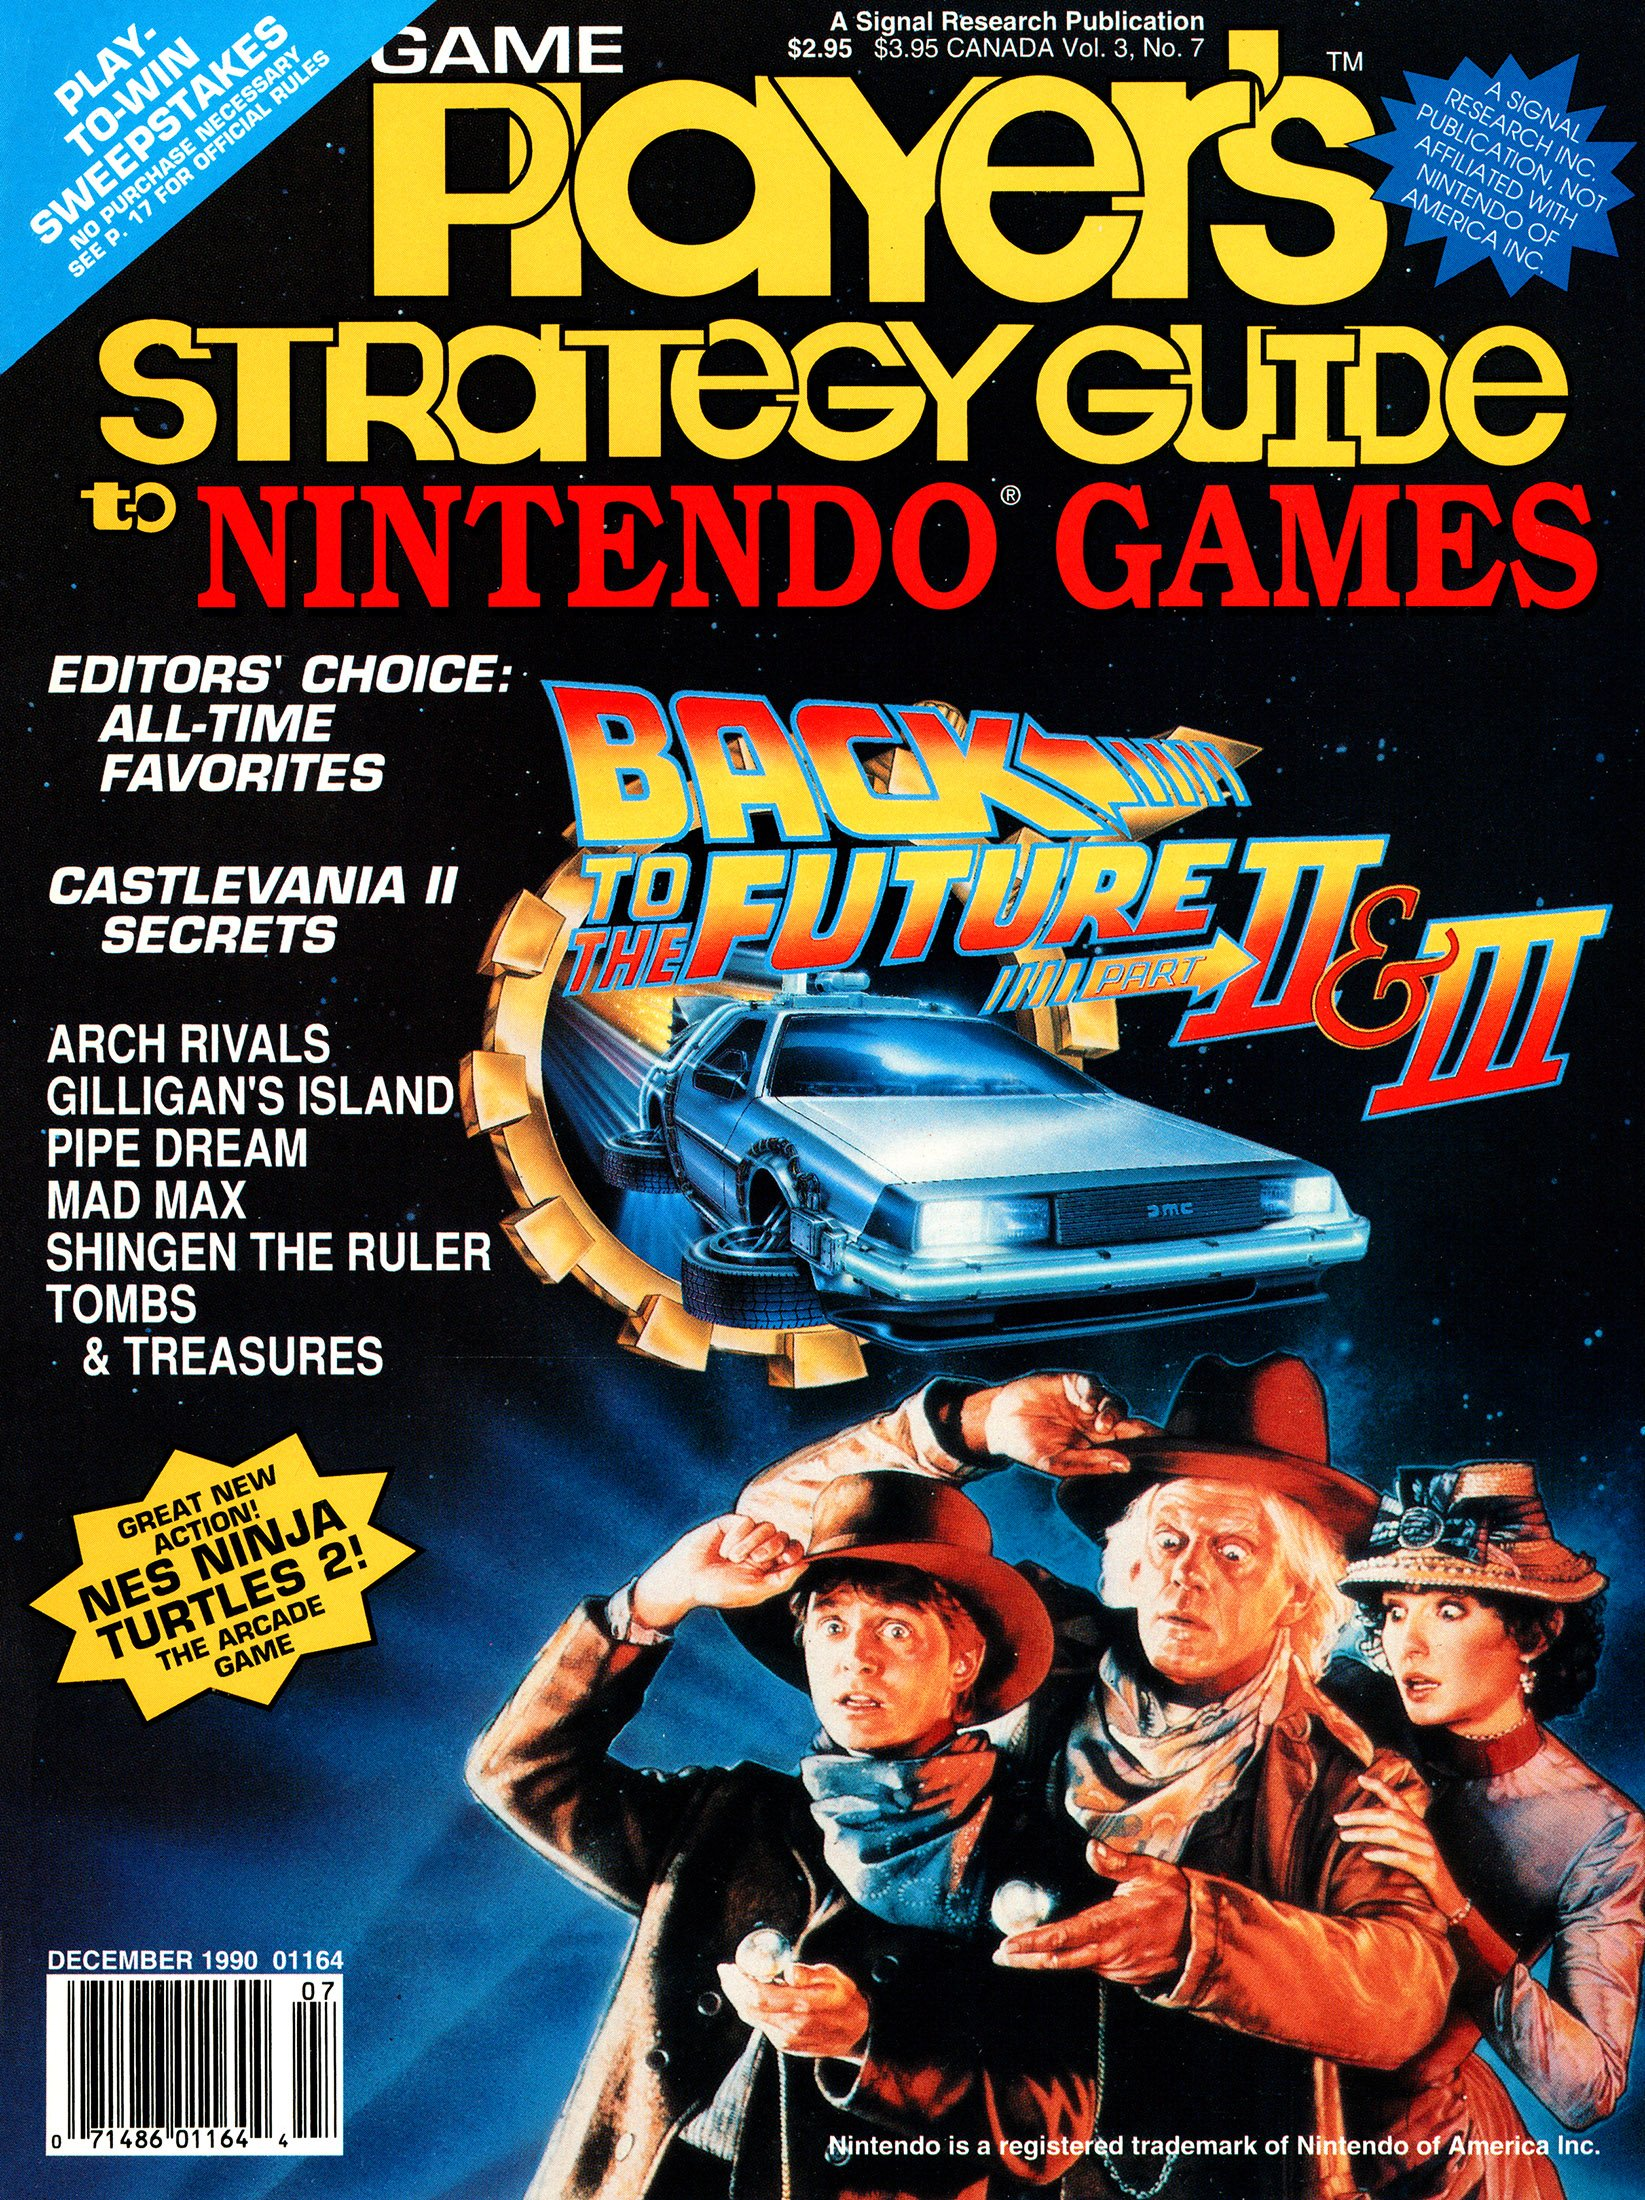 New Release - Game Player's Strategy Guide to Nintendo Games Volume 3 Number 7 (December 1990)